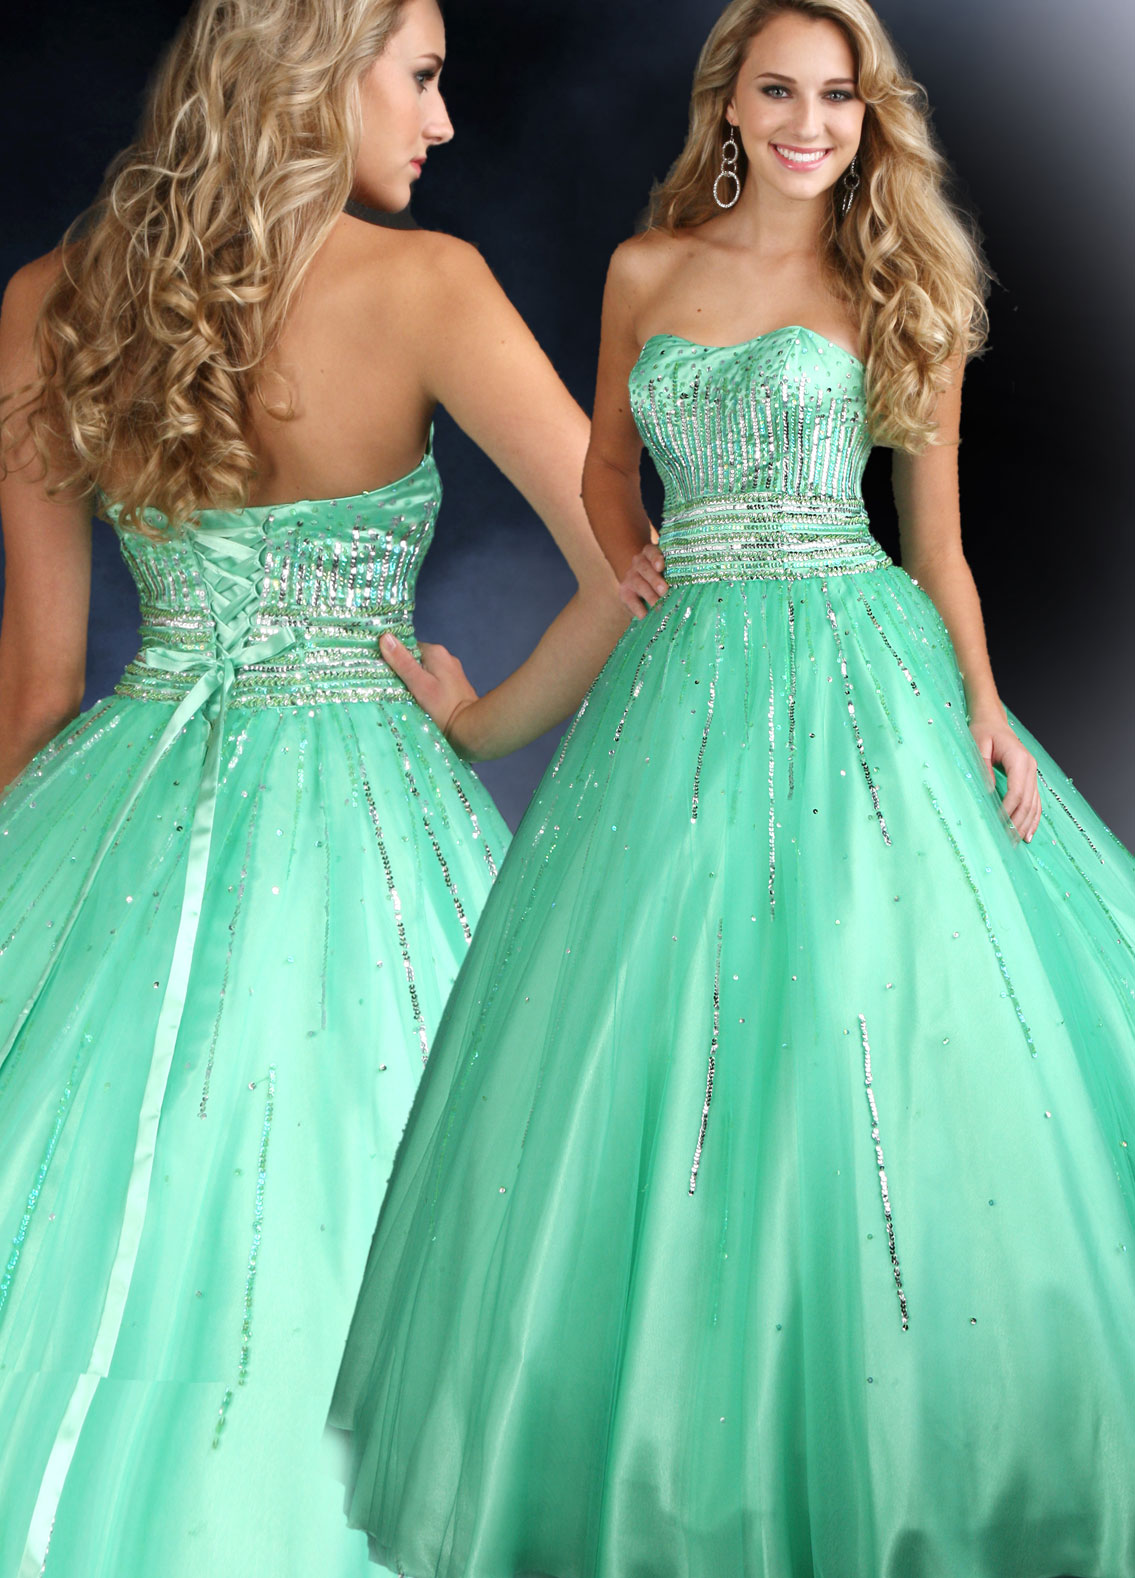 Tulle lime green ball gown.